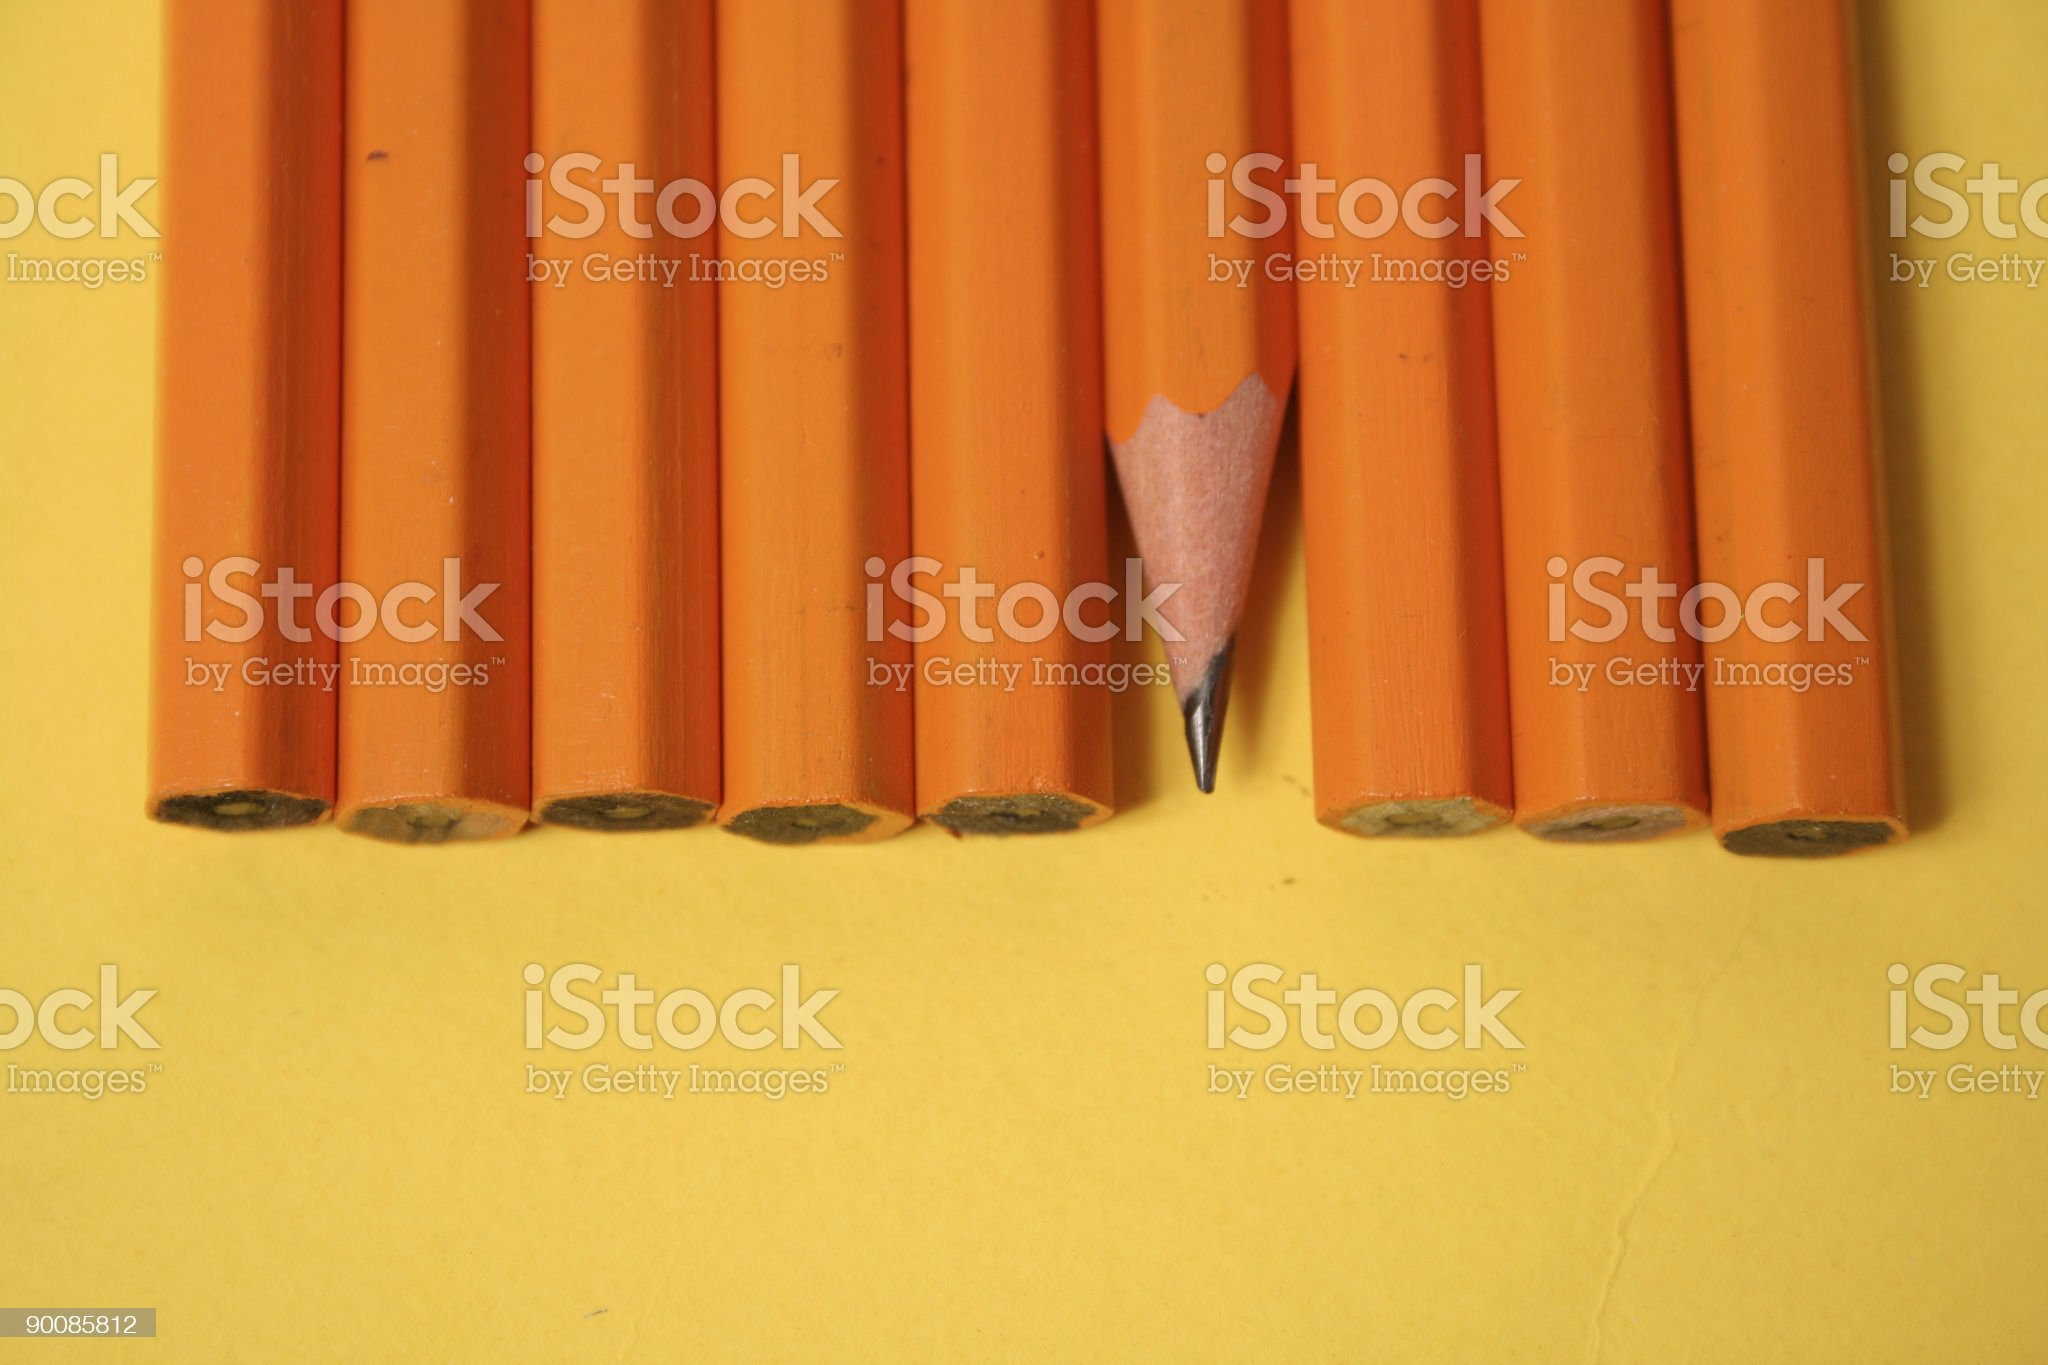 pencils on yellow background royalty-free stock photo